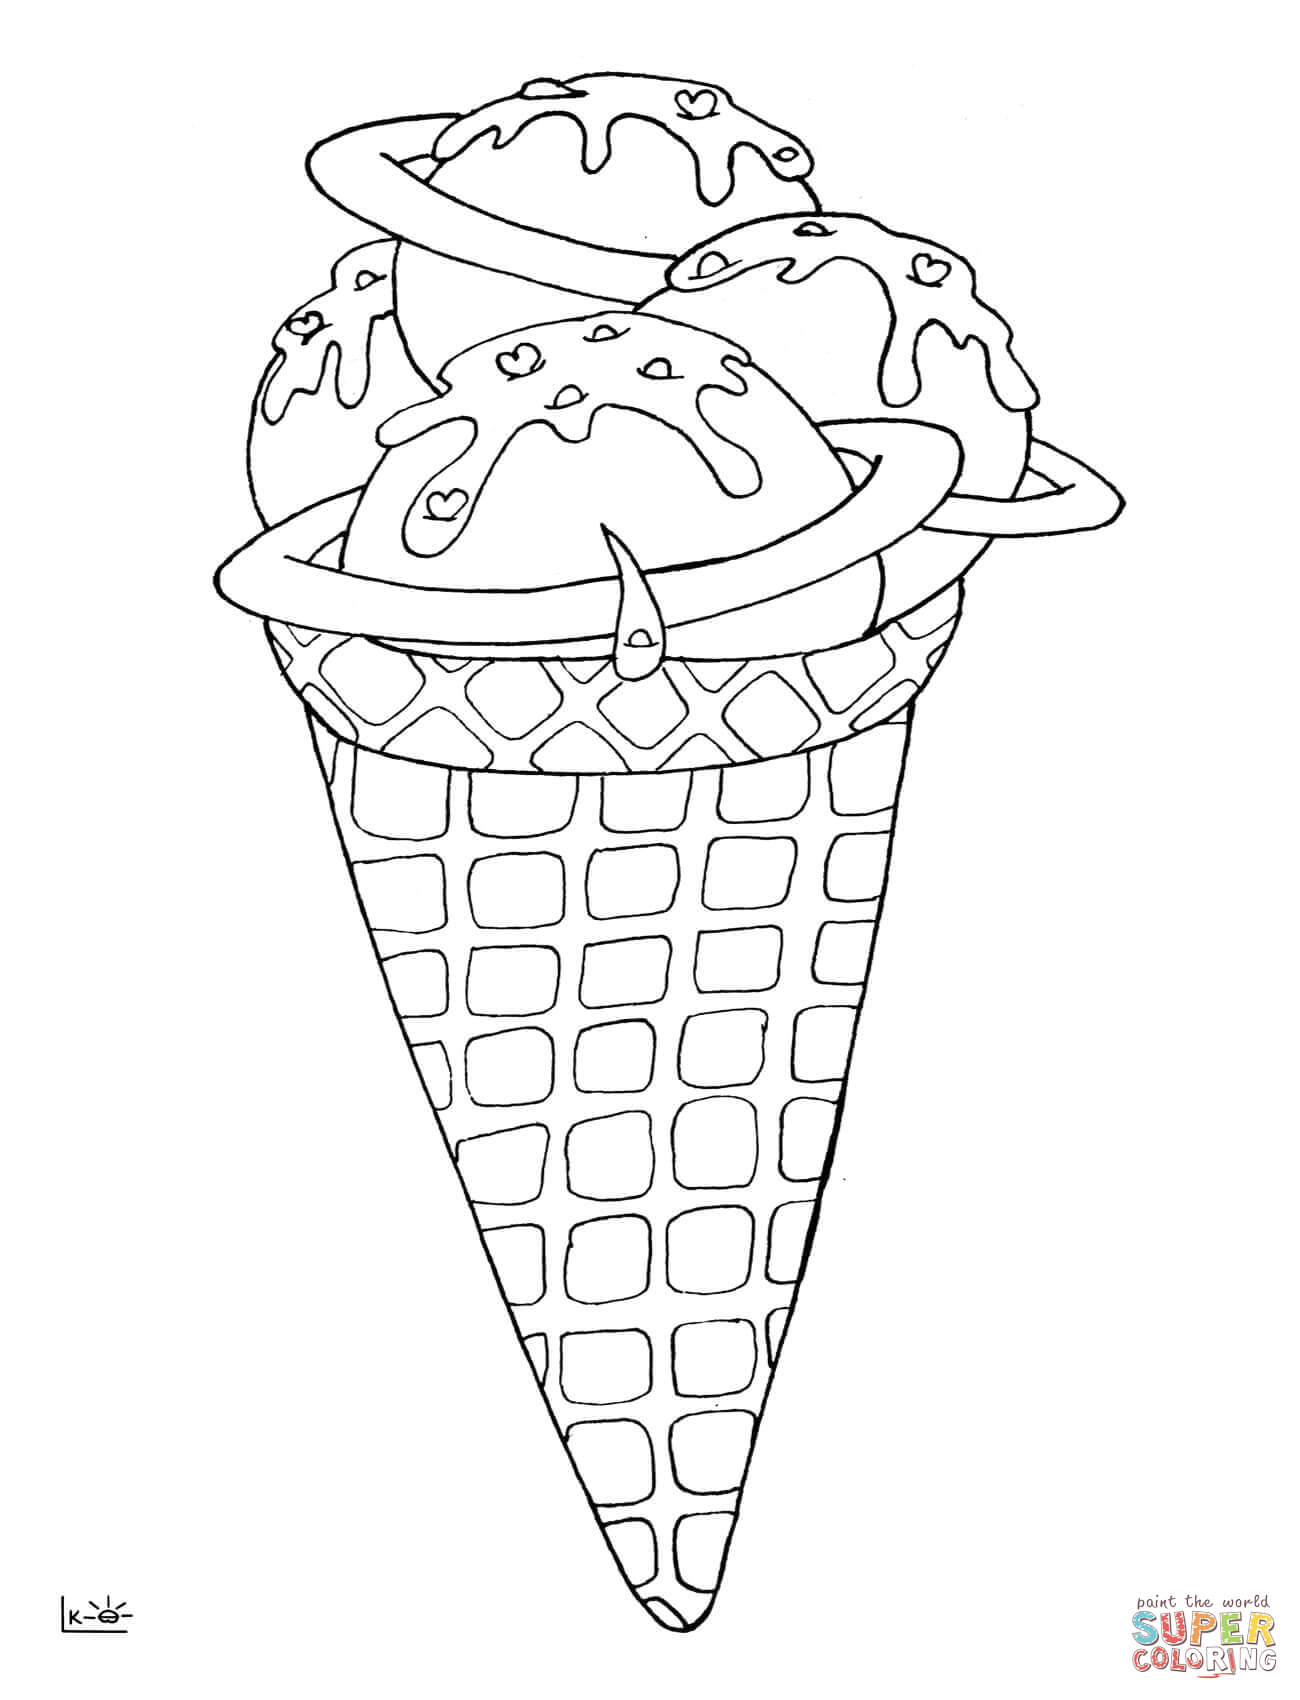 Ice Cream Cone Line Drawing at GetDrawings | Free download